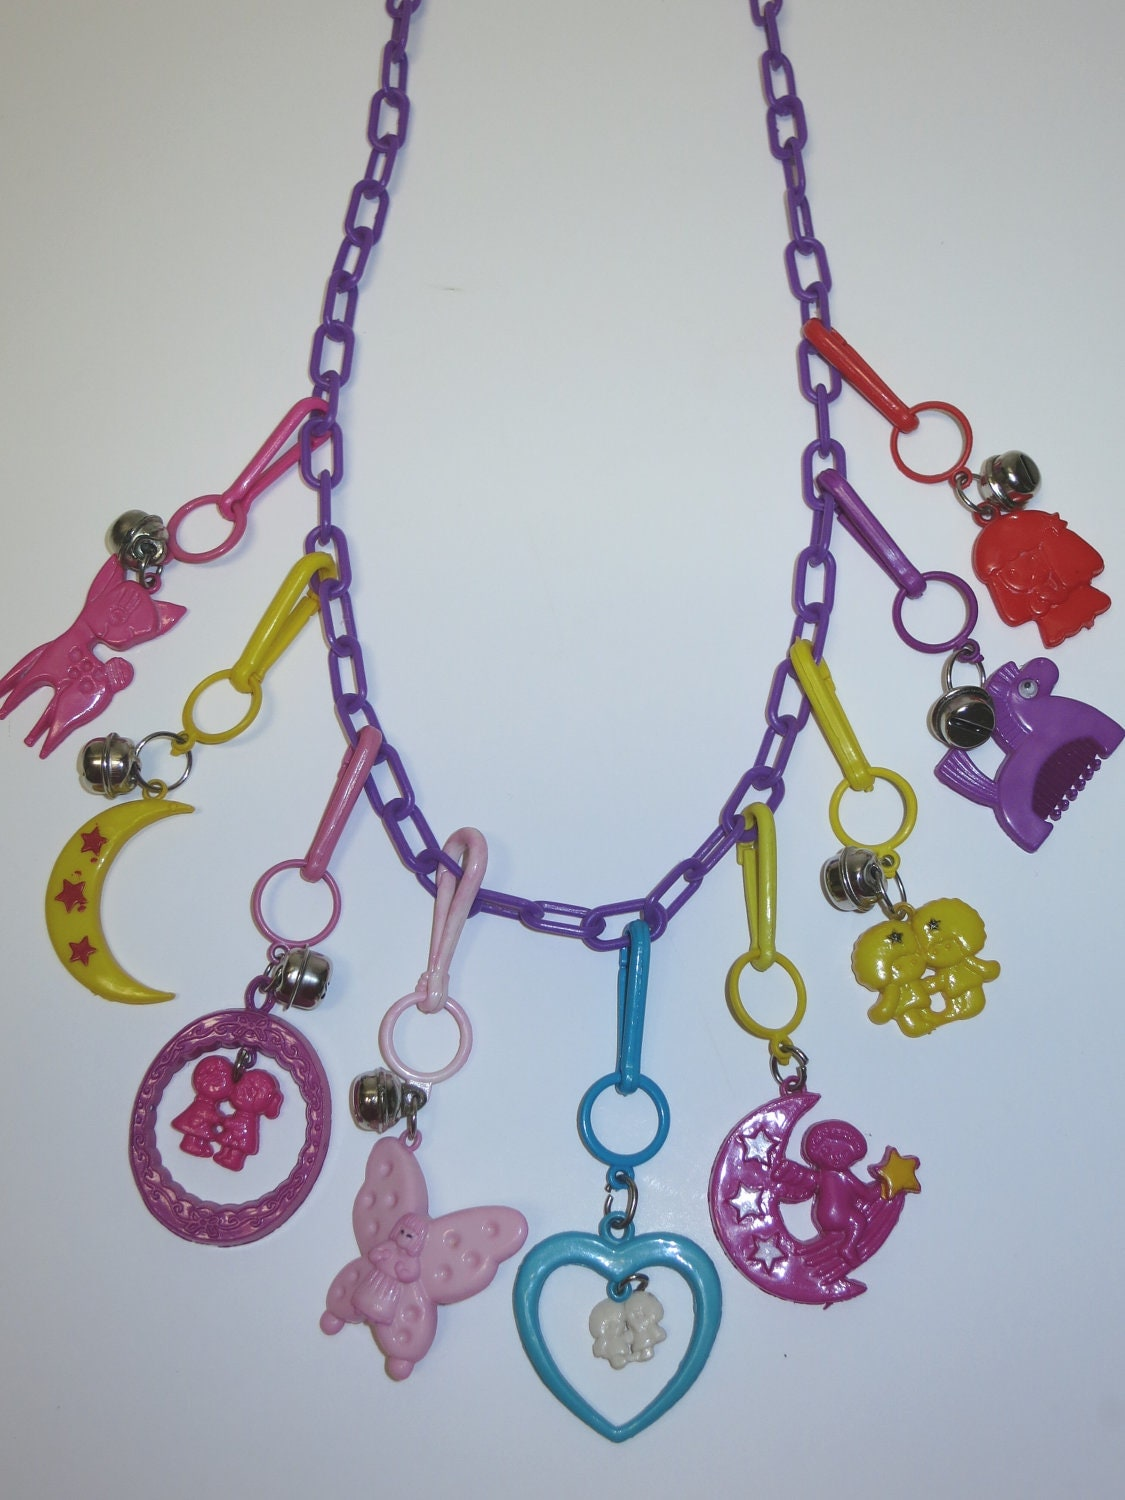 1980s plastic charm necklace jewelry 80s purple chain 9 charms